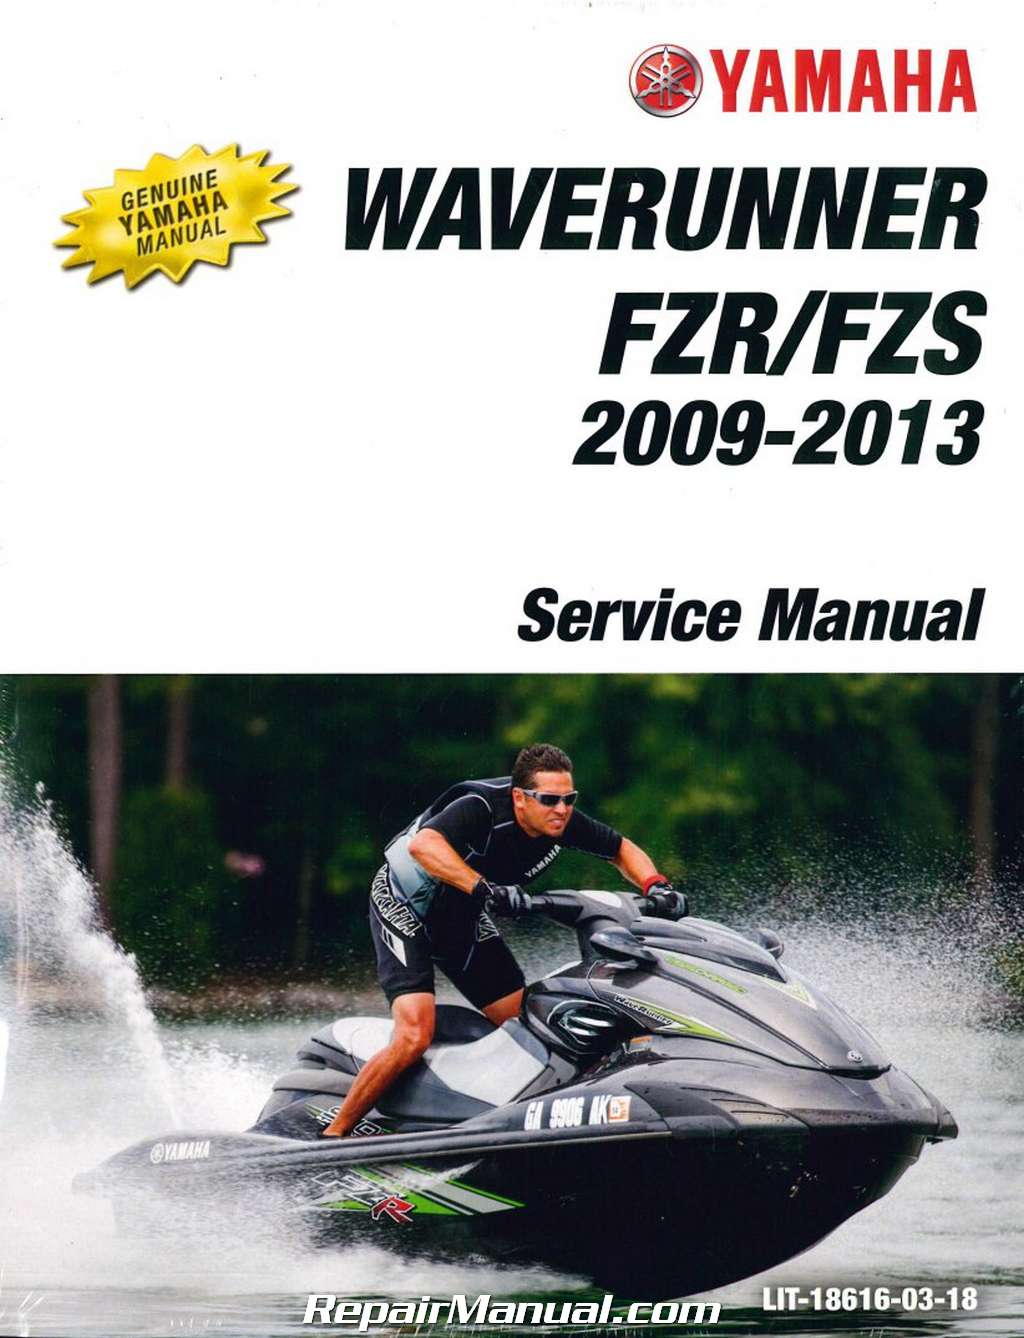 Yamaha Waverunner Manual